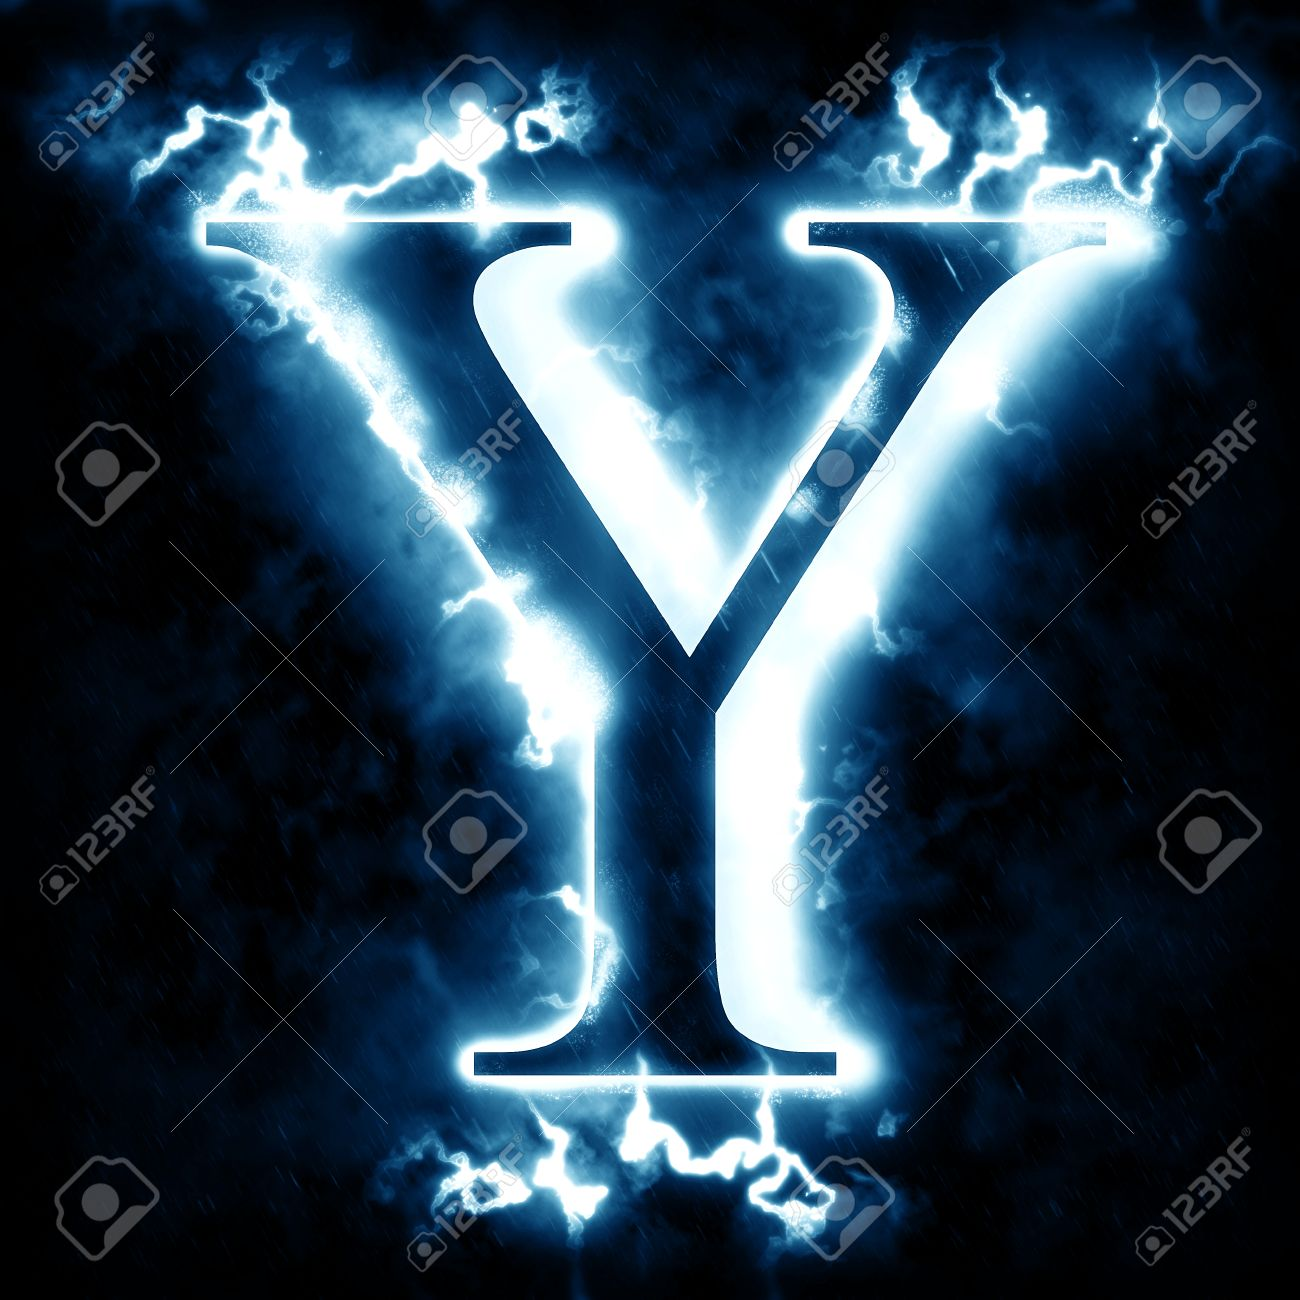 Lightning letter y stock photo picture and royalty free image lightning letter y stock photo 46712288 altavistaventures Choice Image